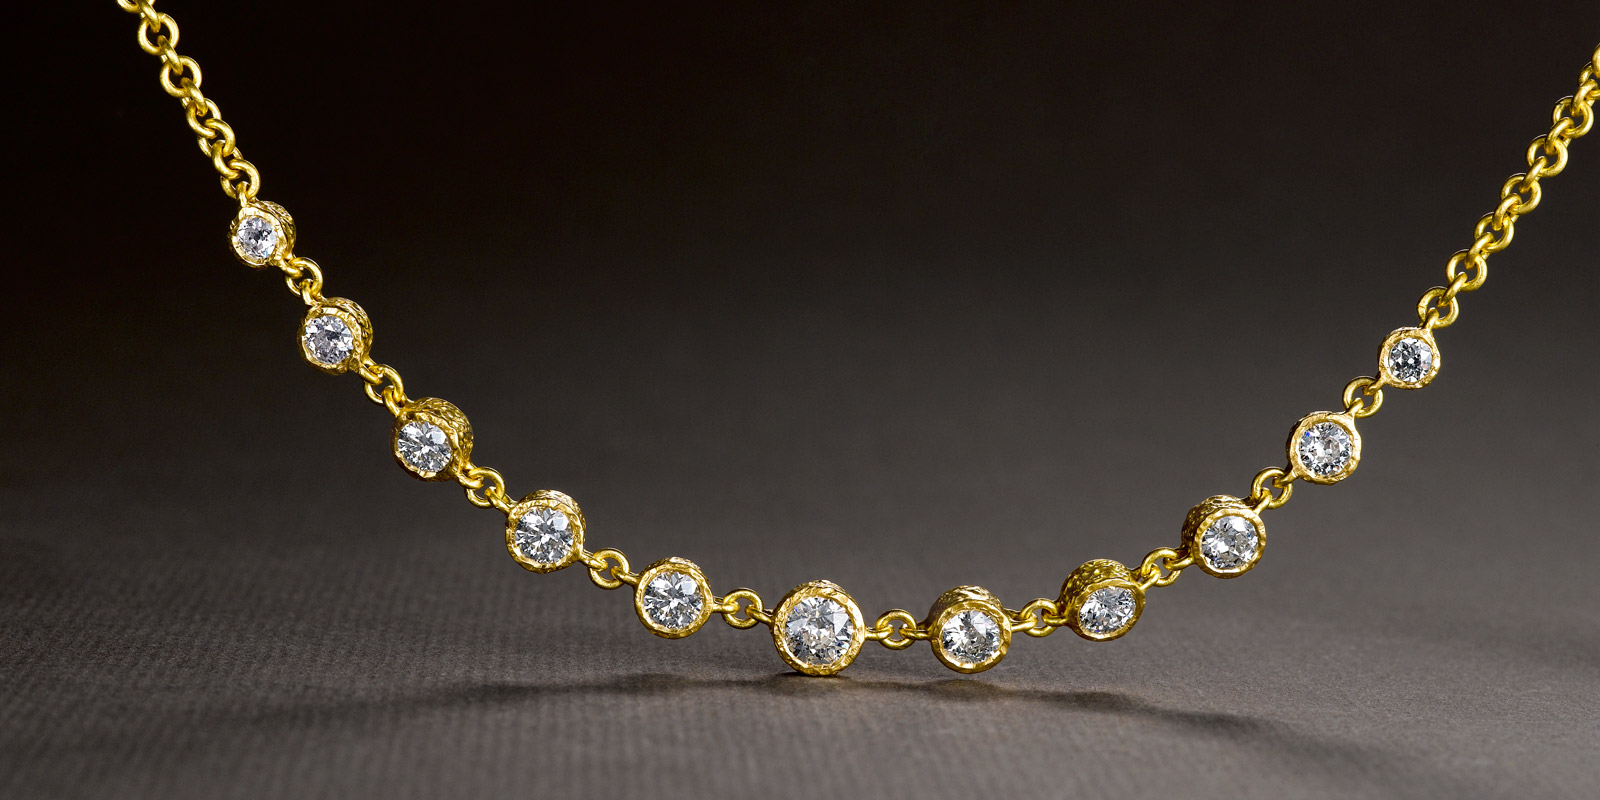 ORLI necklace. Diamonds and 22 karat gold